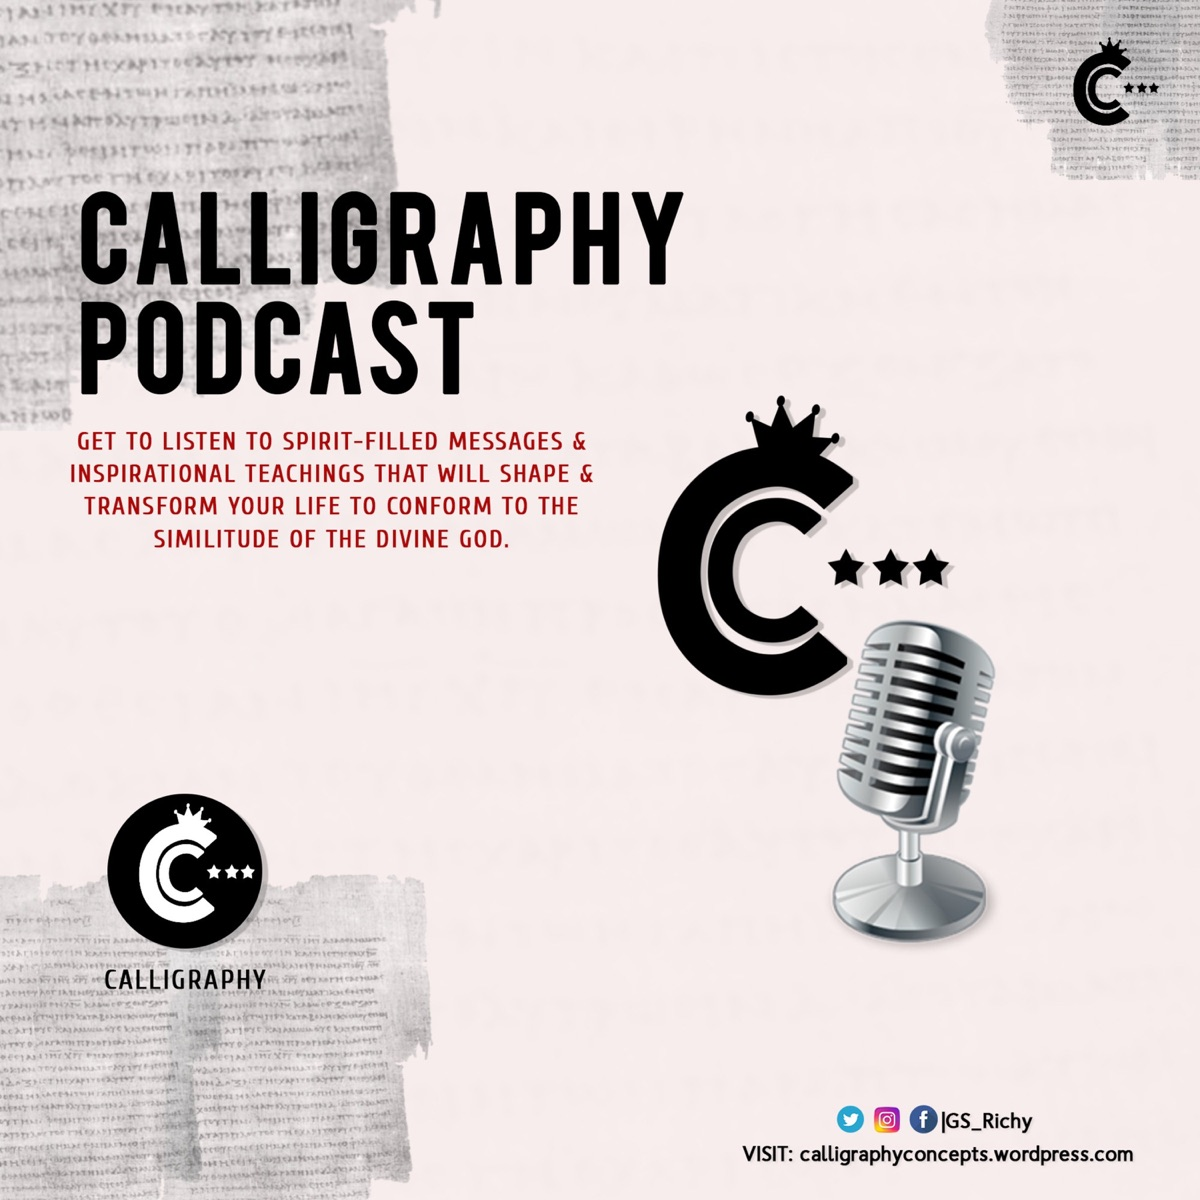 Calligraphy Podcast